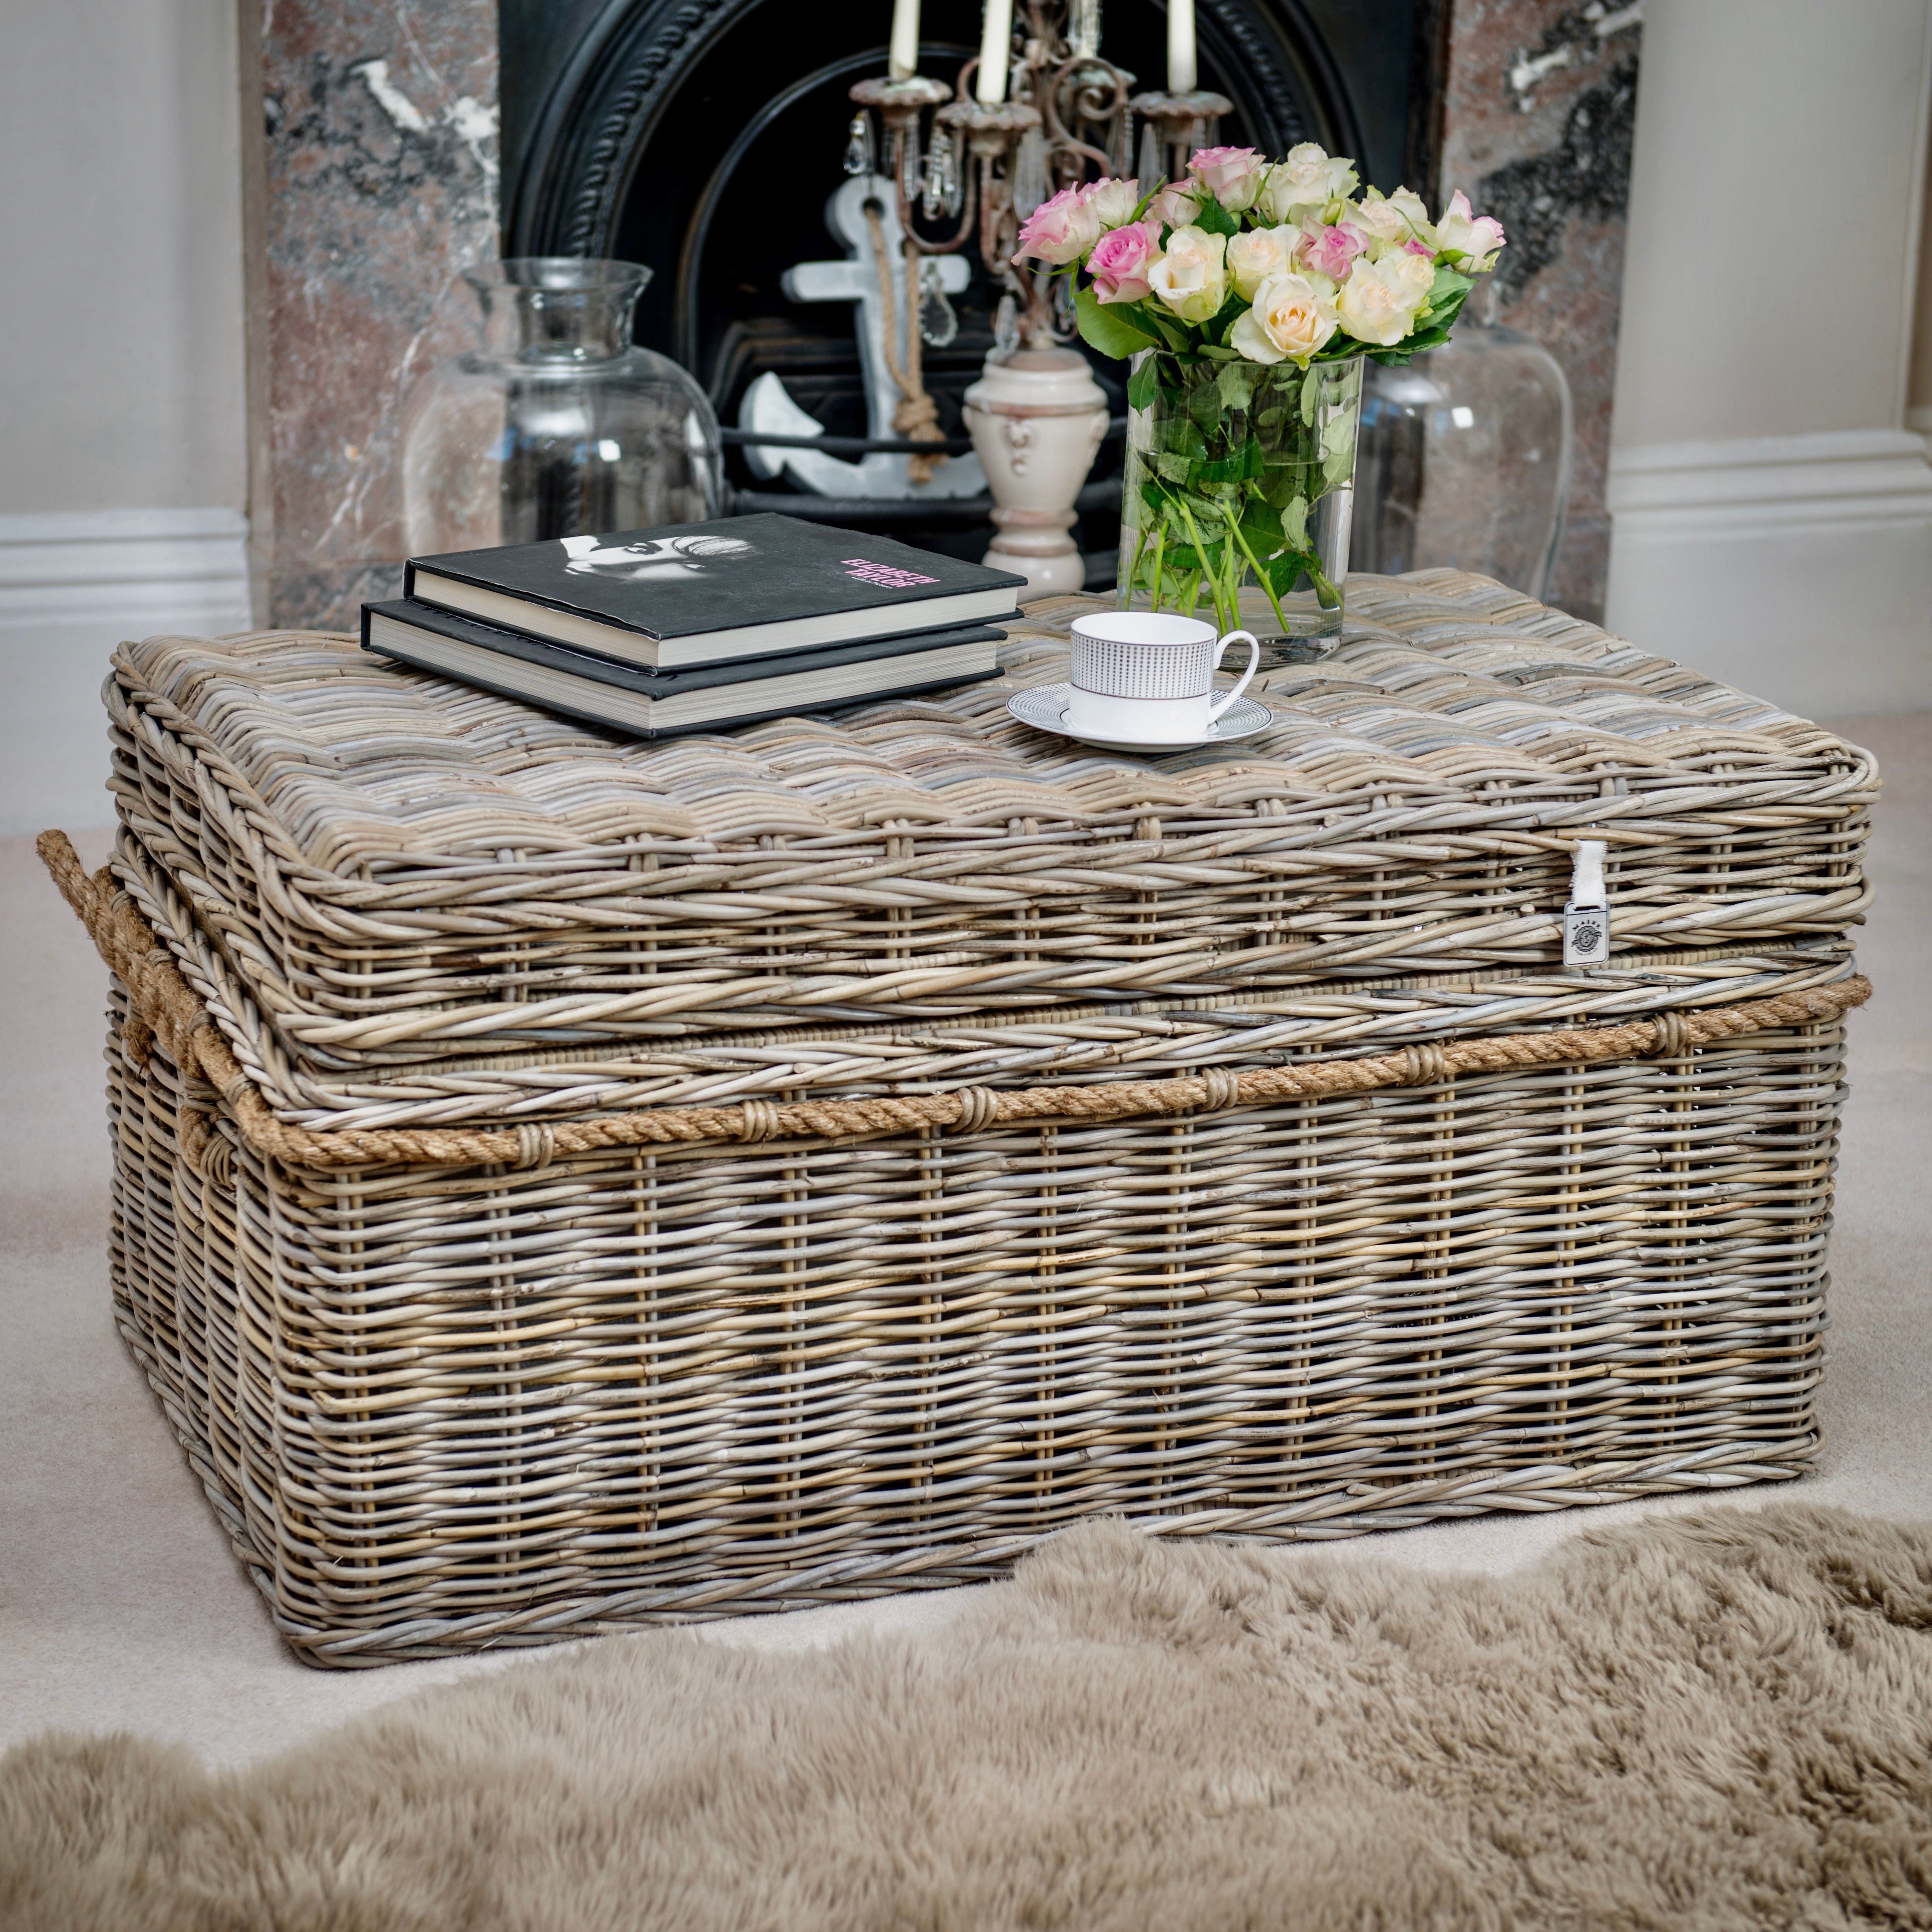 Pin on Rattan MaineFurniture